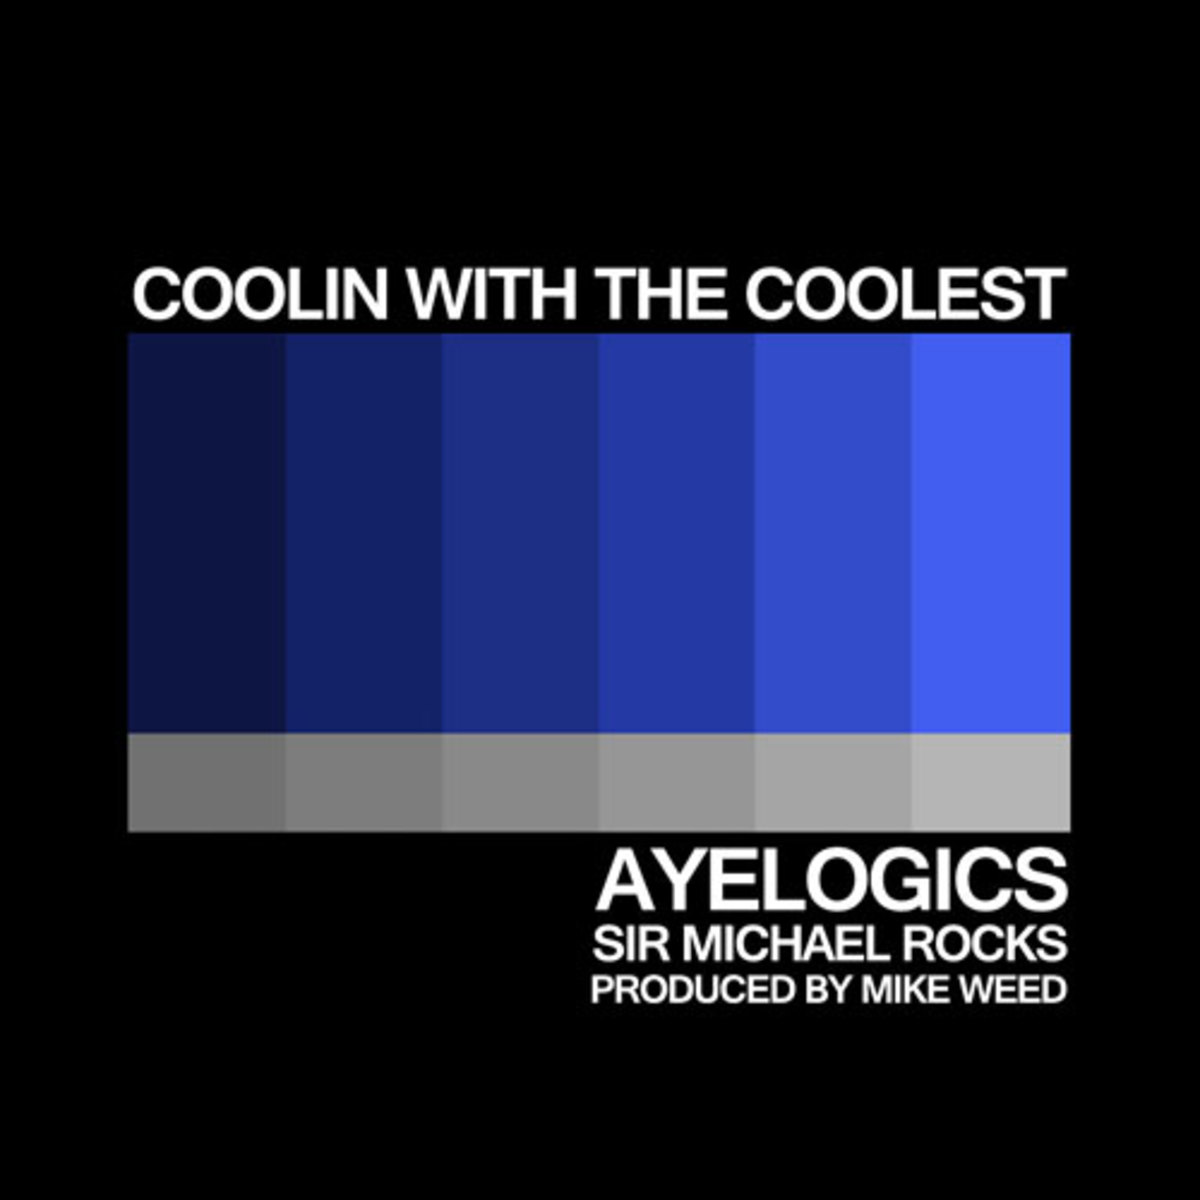 ayelogics-coolinwith.jpg